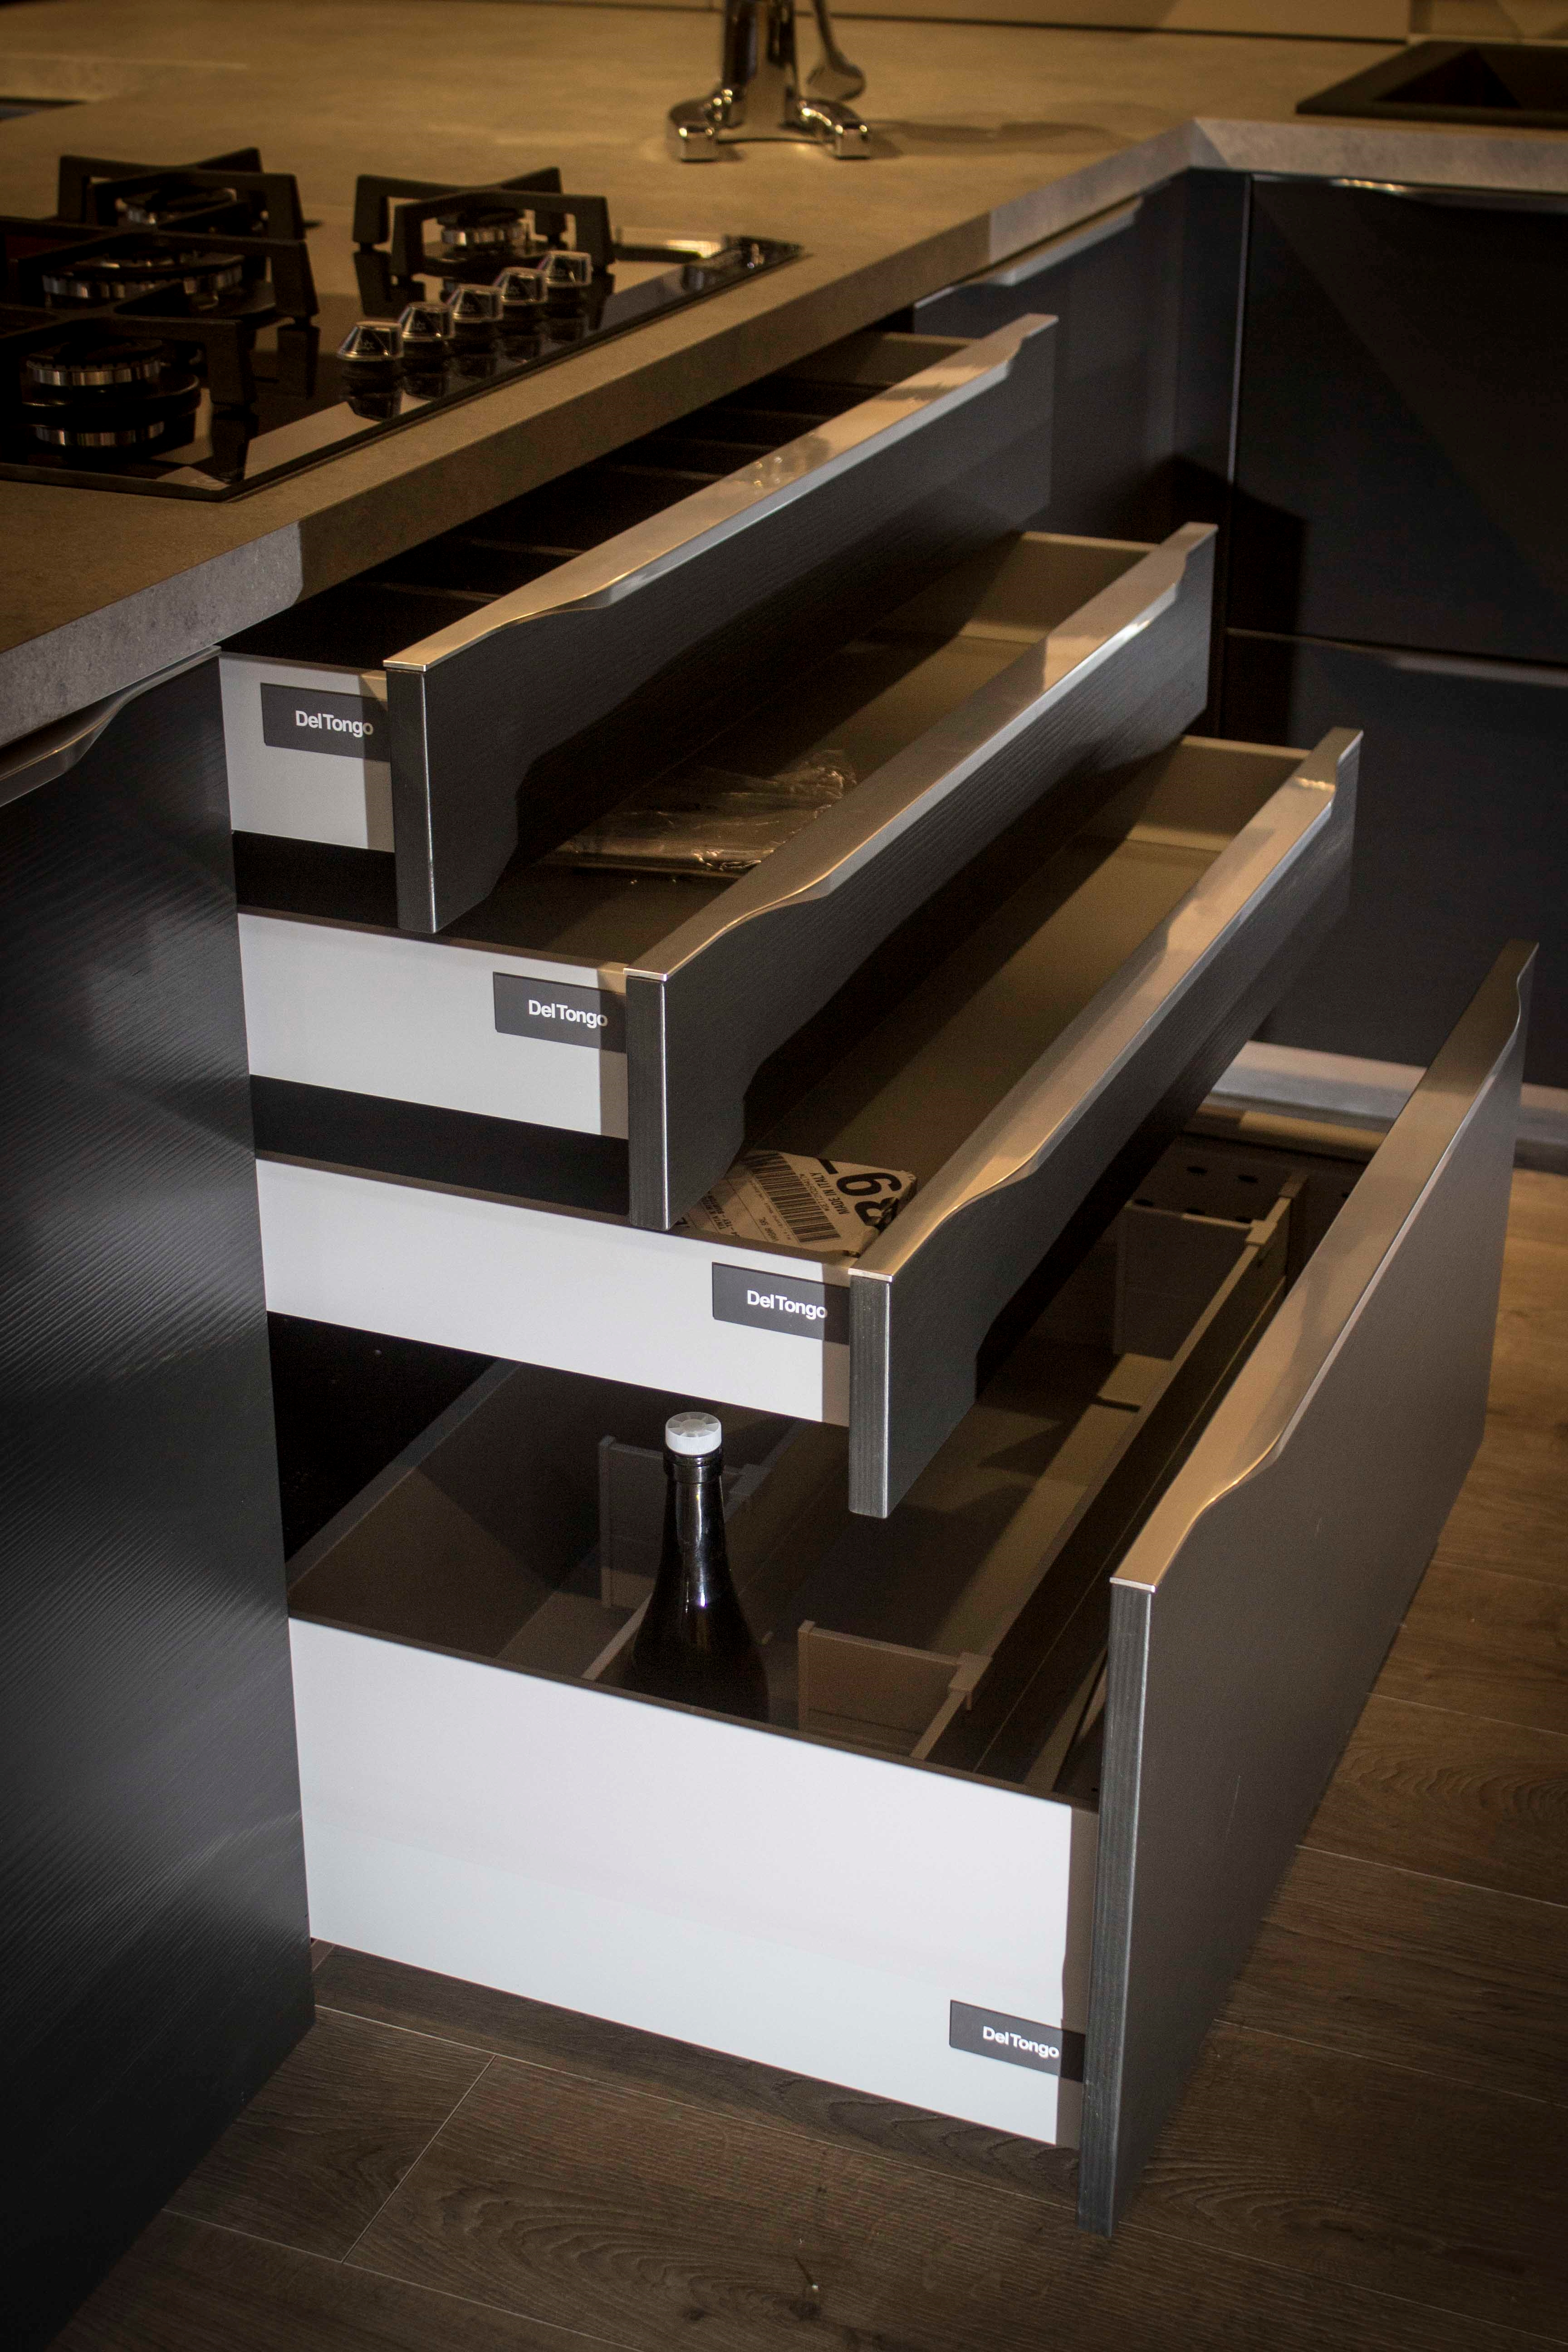 Stunning Cucine Del Tongo Outlet Gallery - Home Design Ideas 2017 ...